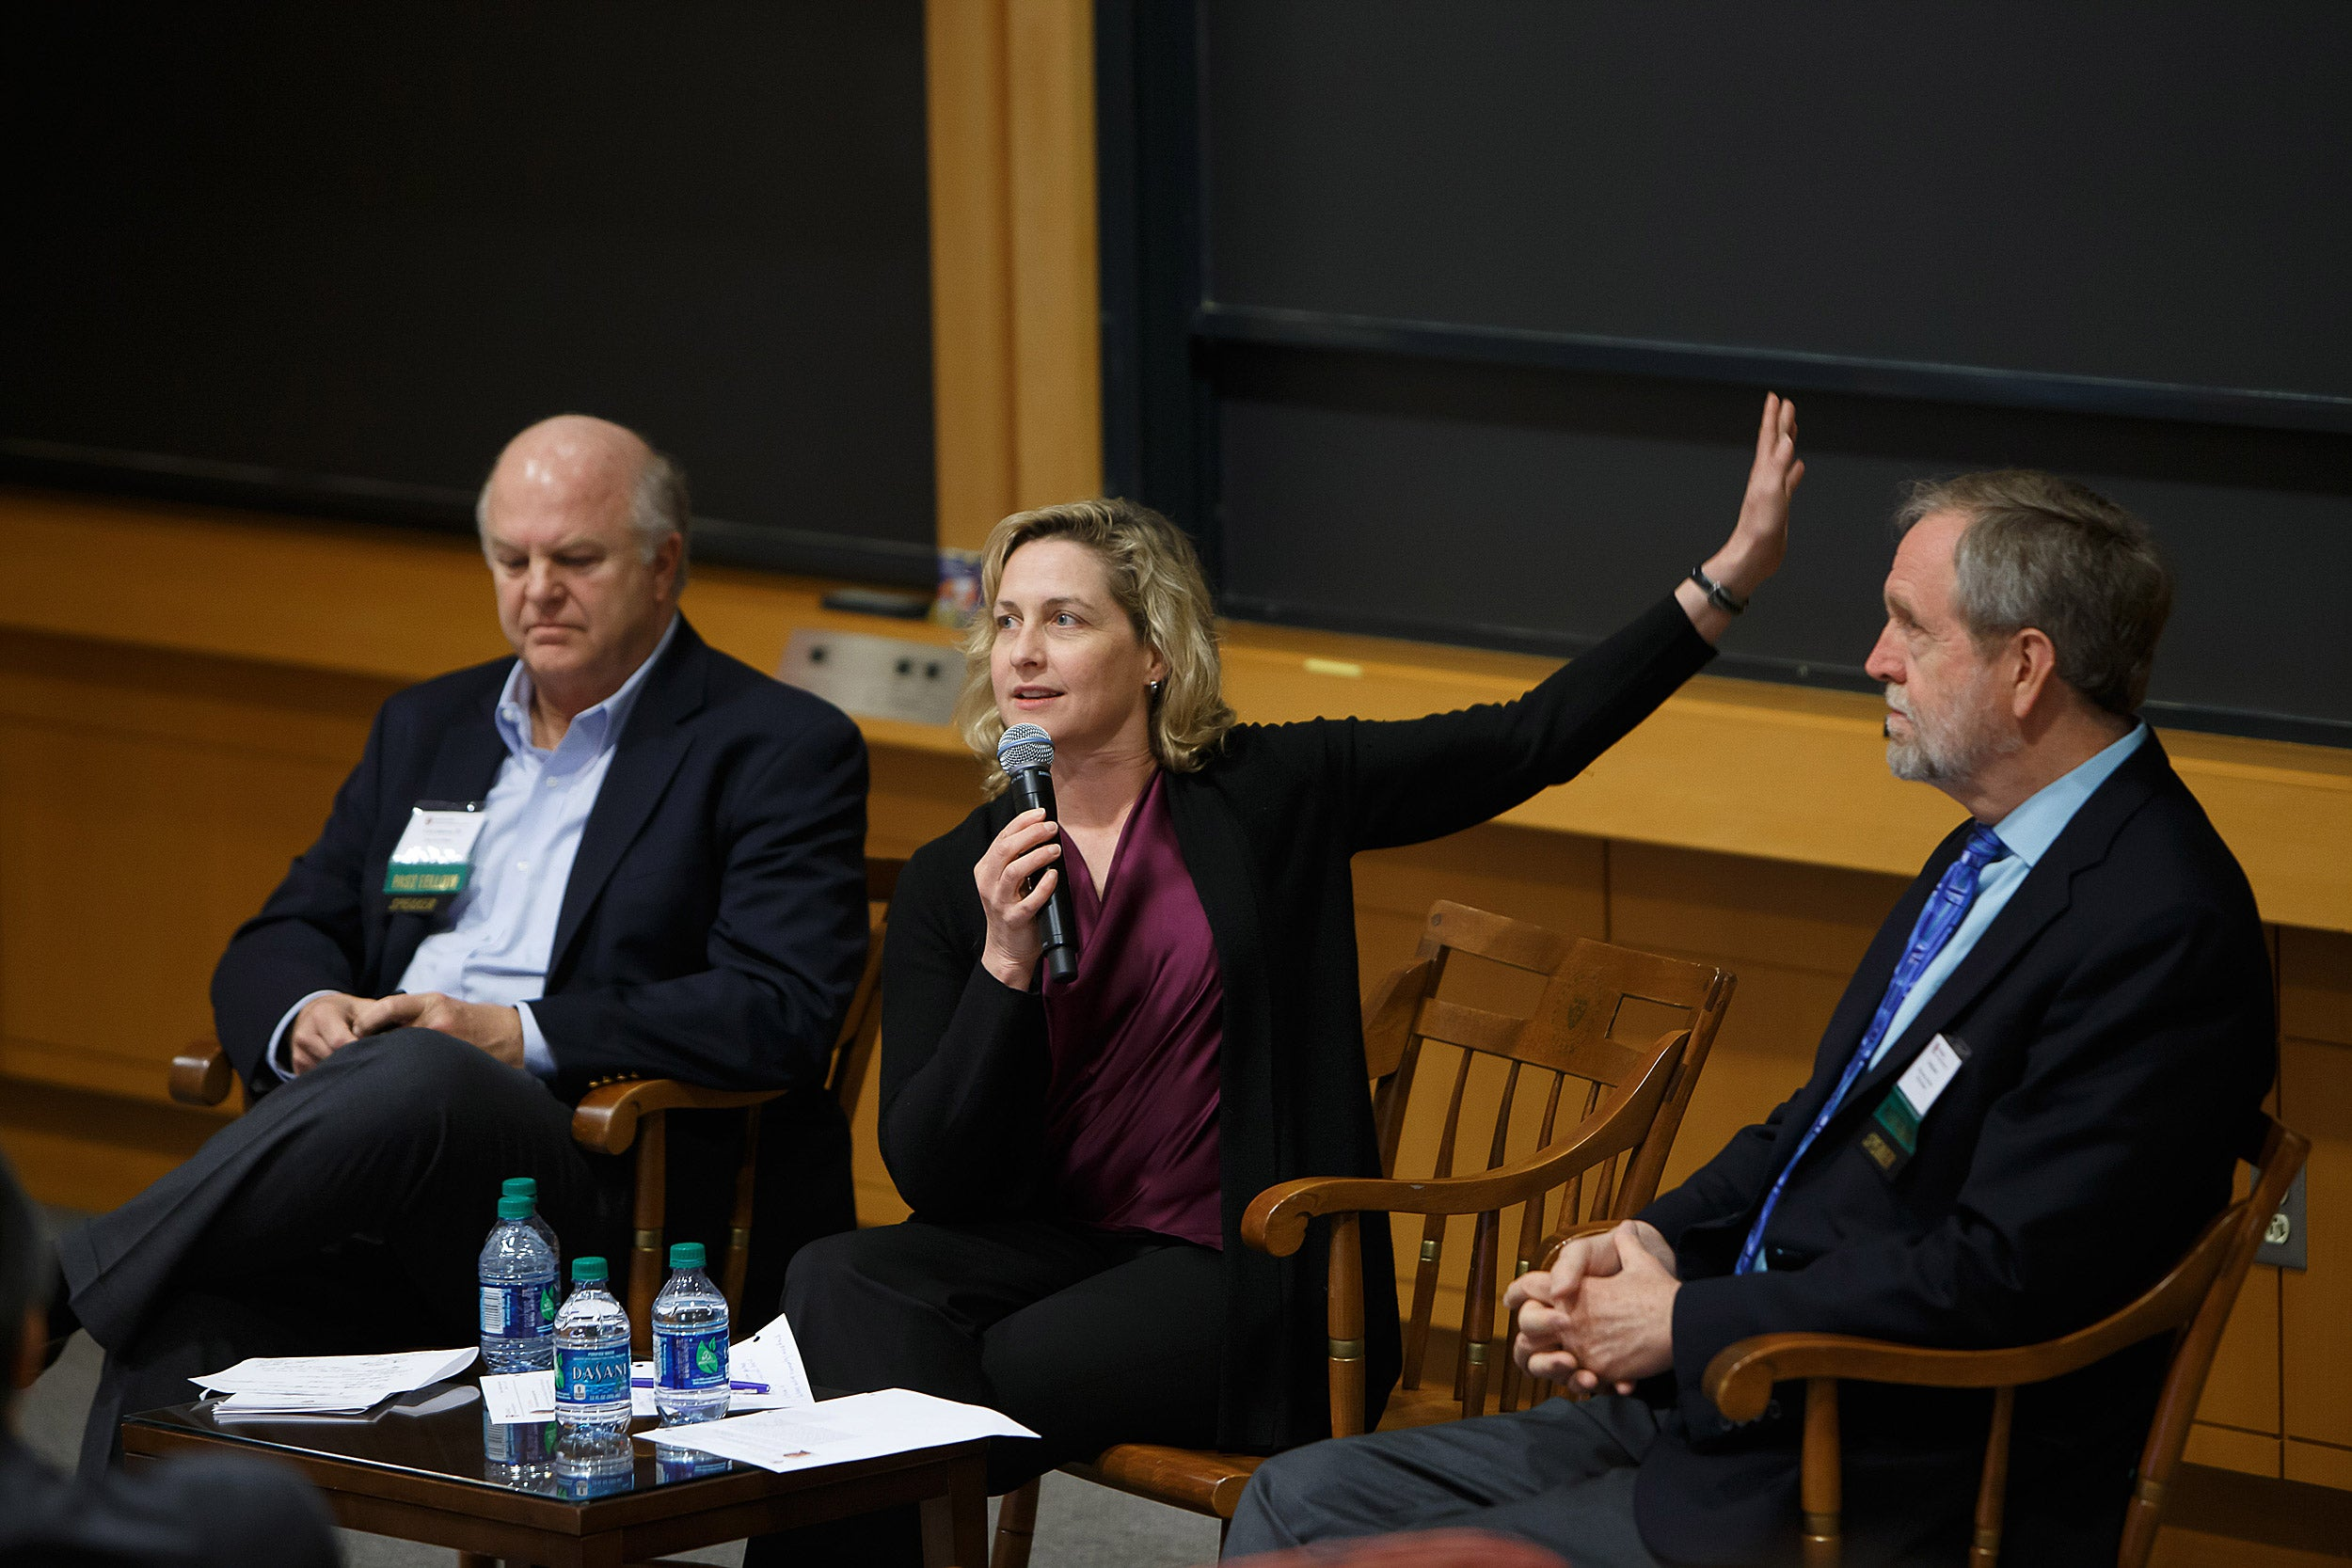 In January, Meredith Rosenthal (center) will begin her tenure as faculty chair of the Harvard Advanced Leadership Initiative.